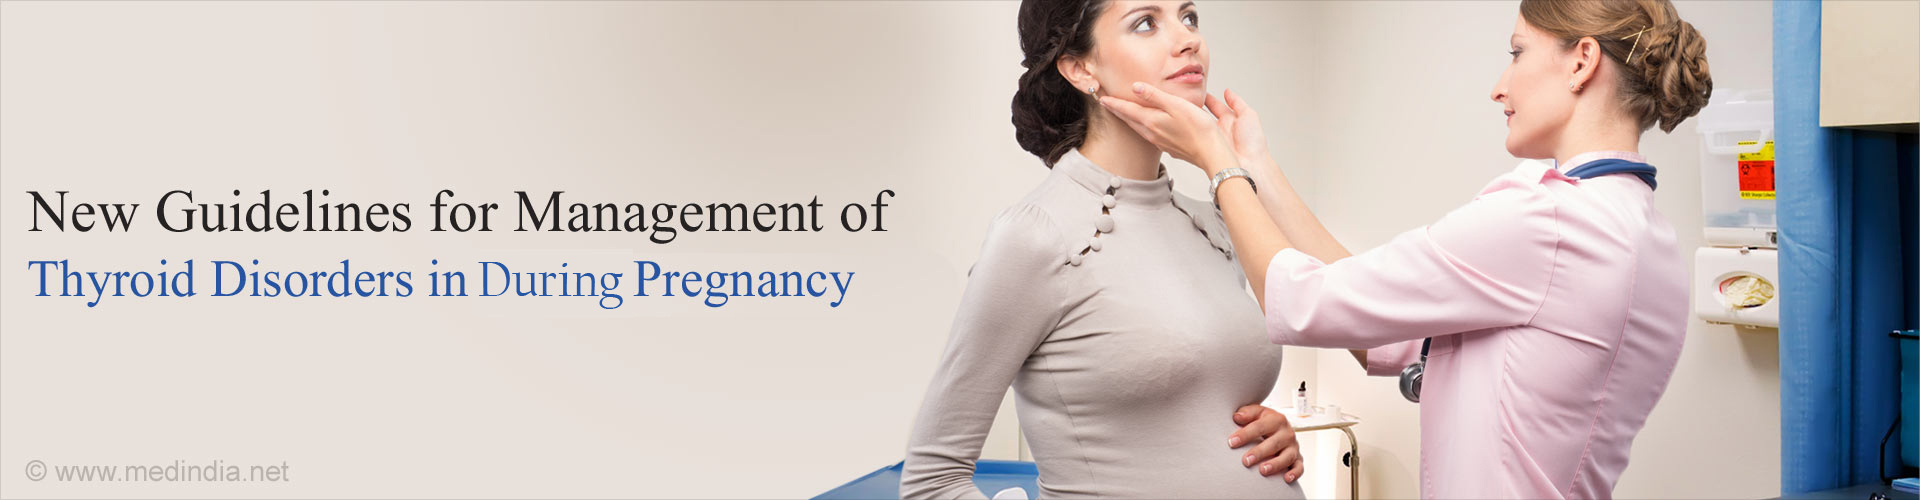 New International Guidelines For Thyroid Disease in Pregnancy